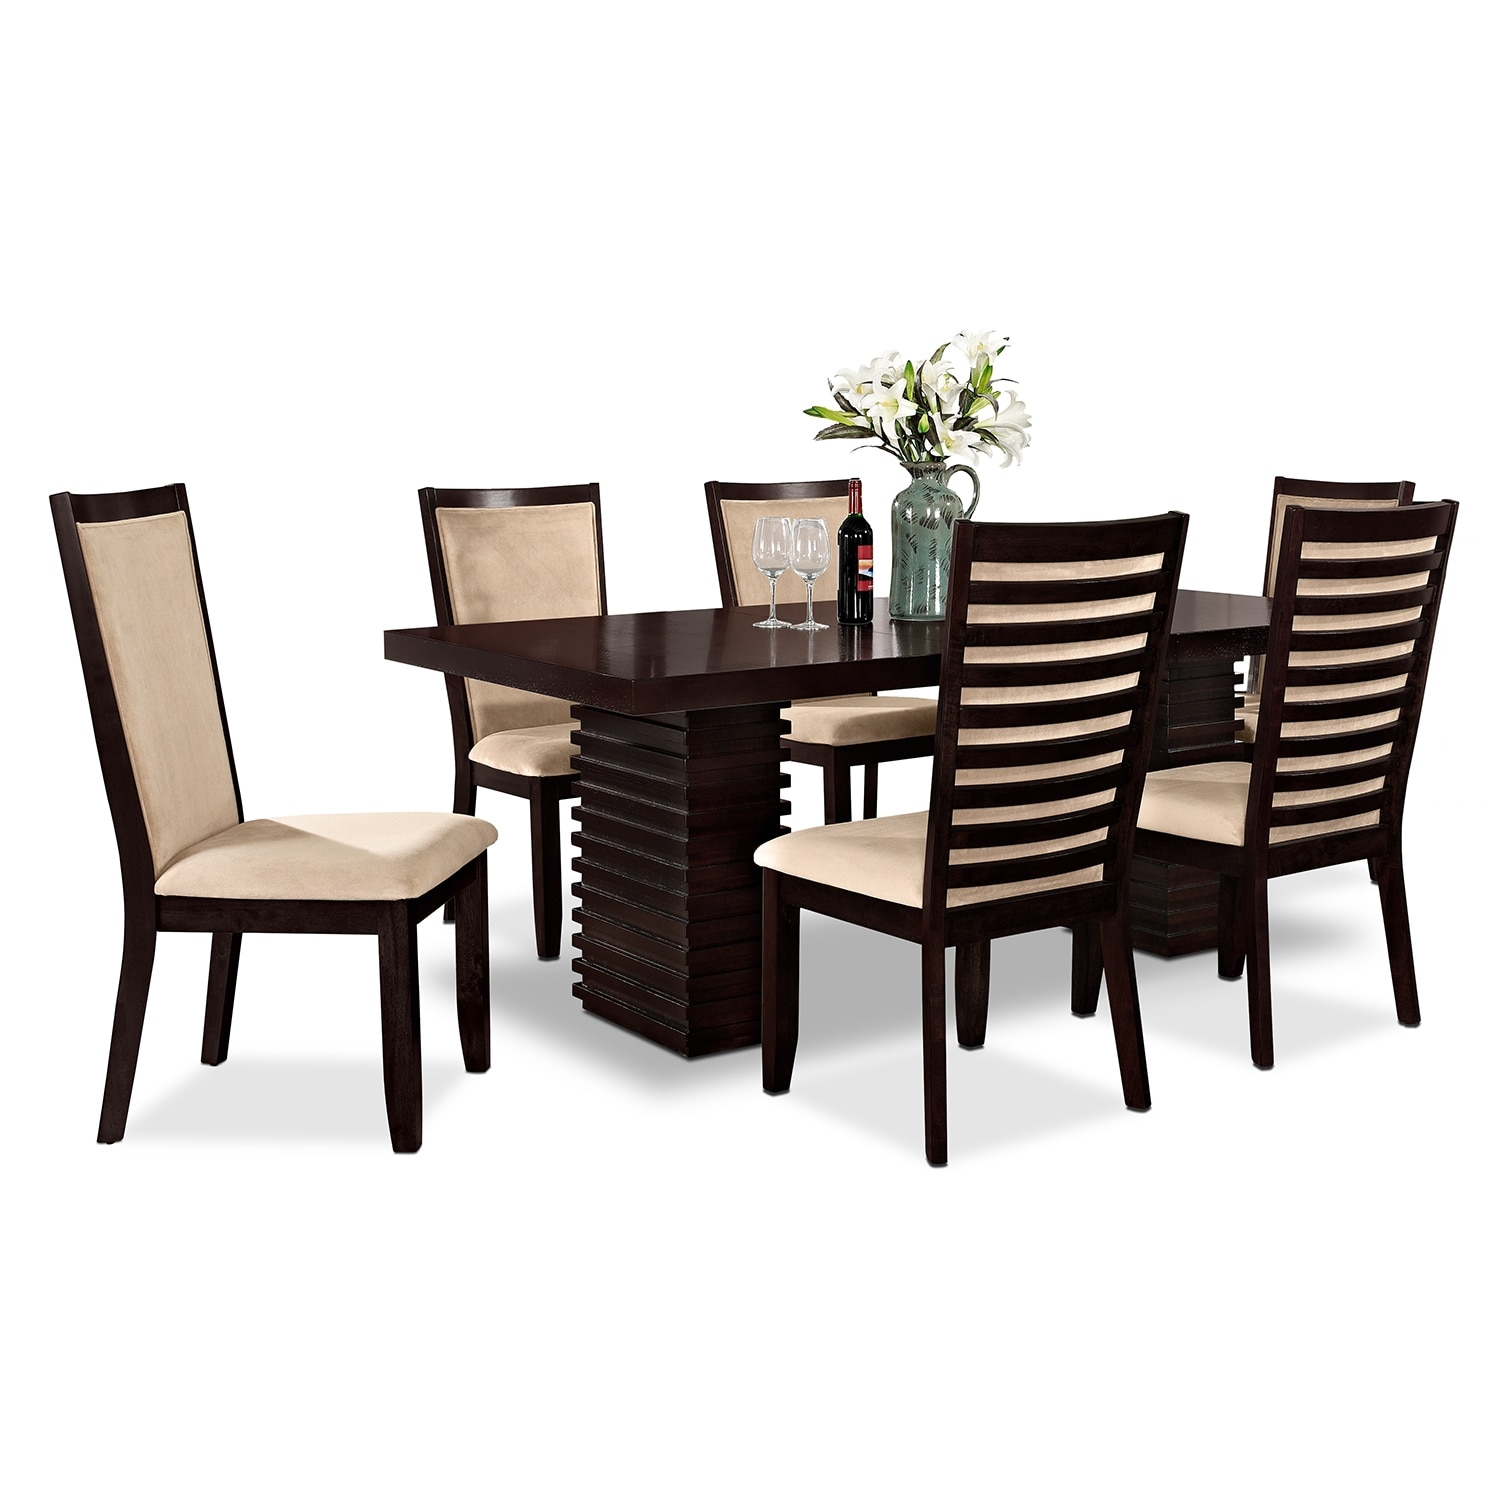 Dining Room Furniture - Paragon 7 Pc. Dinette